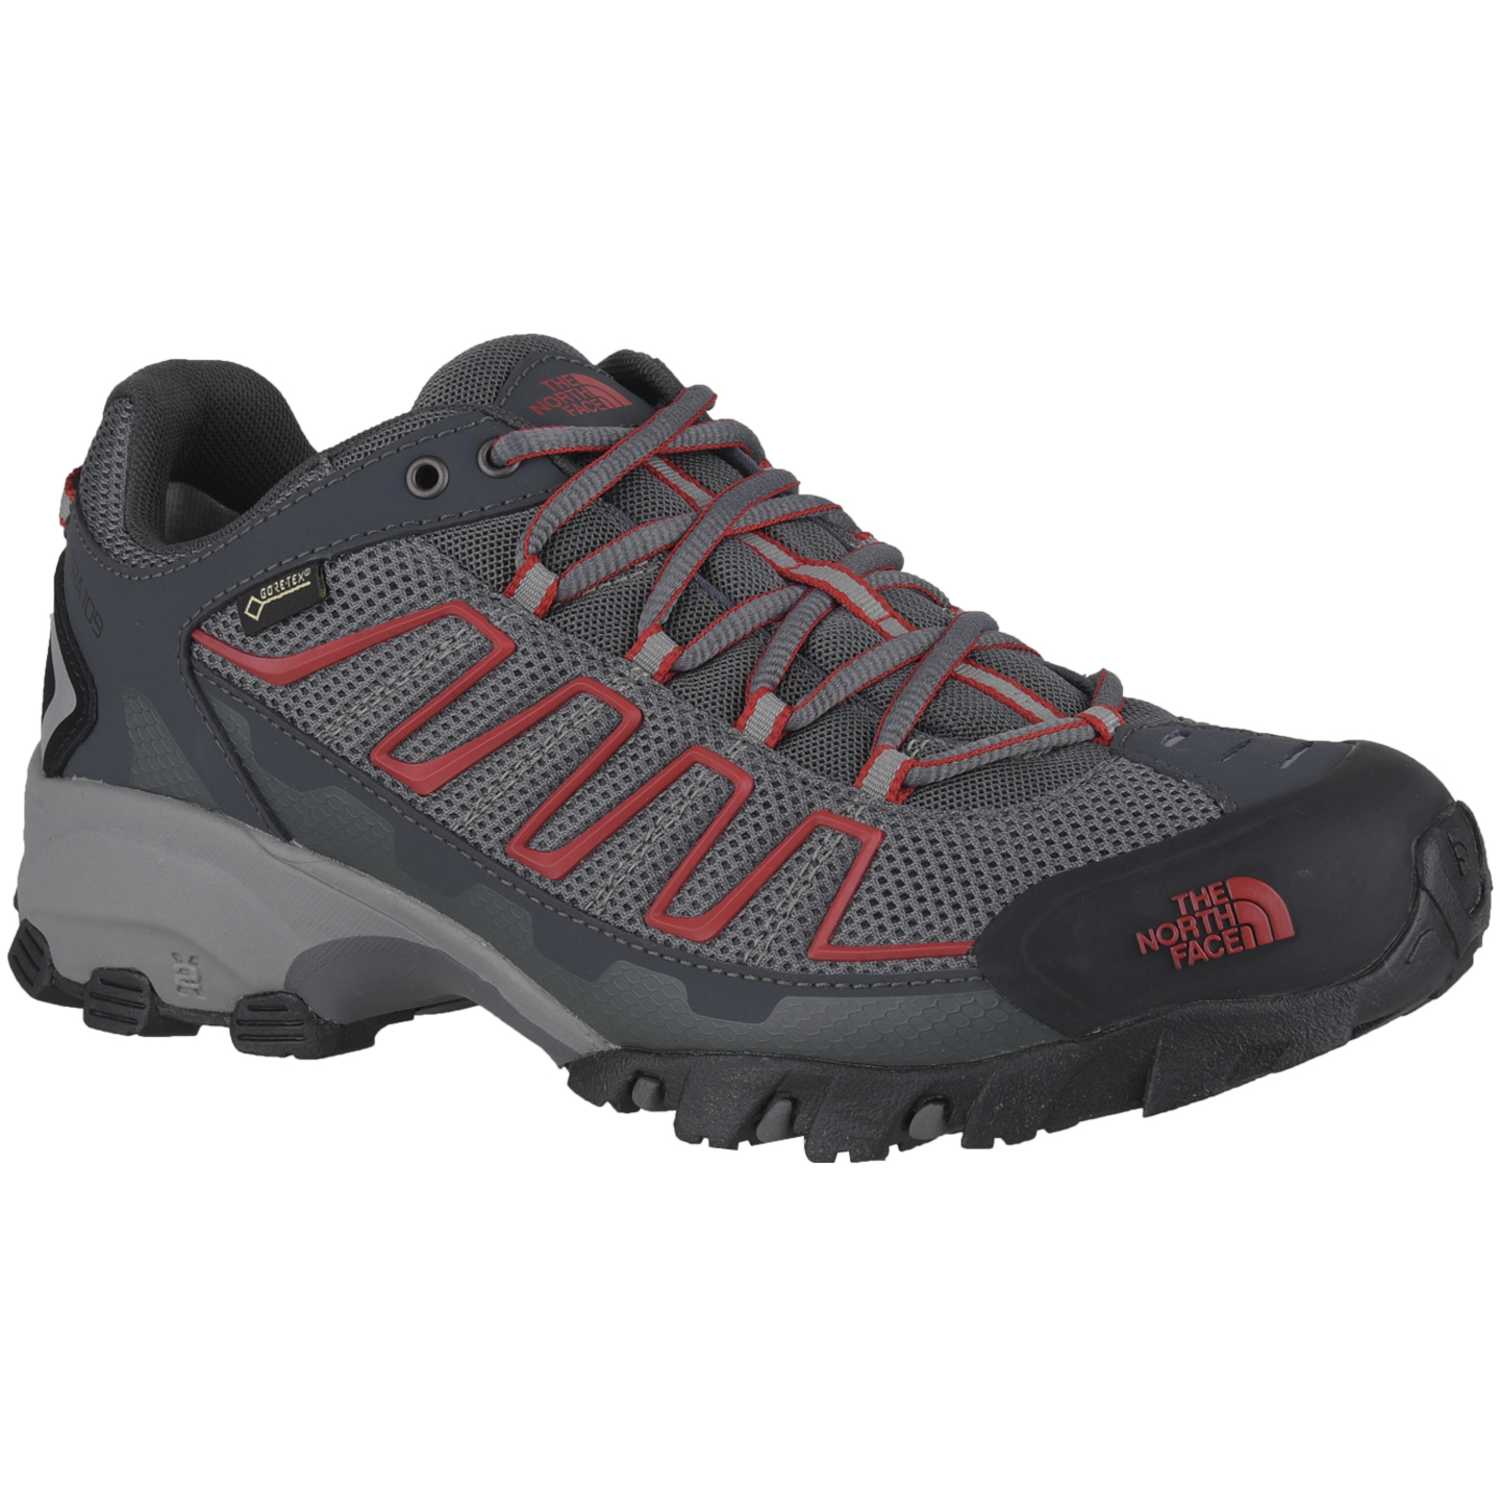 M 109 The Ultra Gris Hombre Gtx De Zapatilla Face North nwSEFYYq8